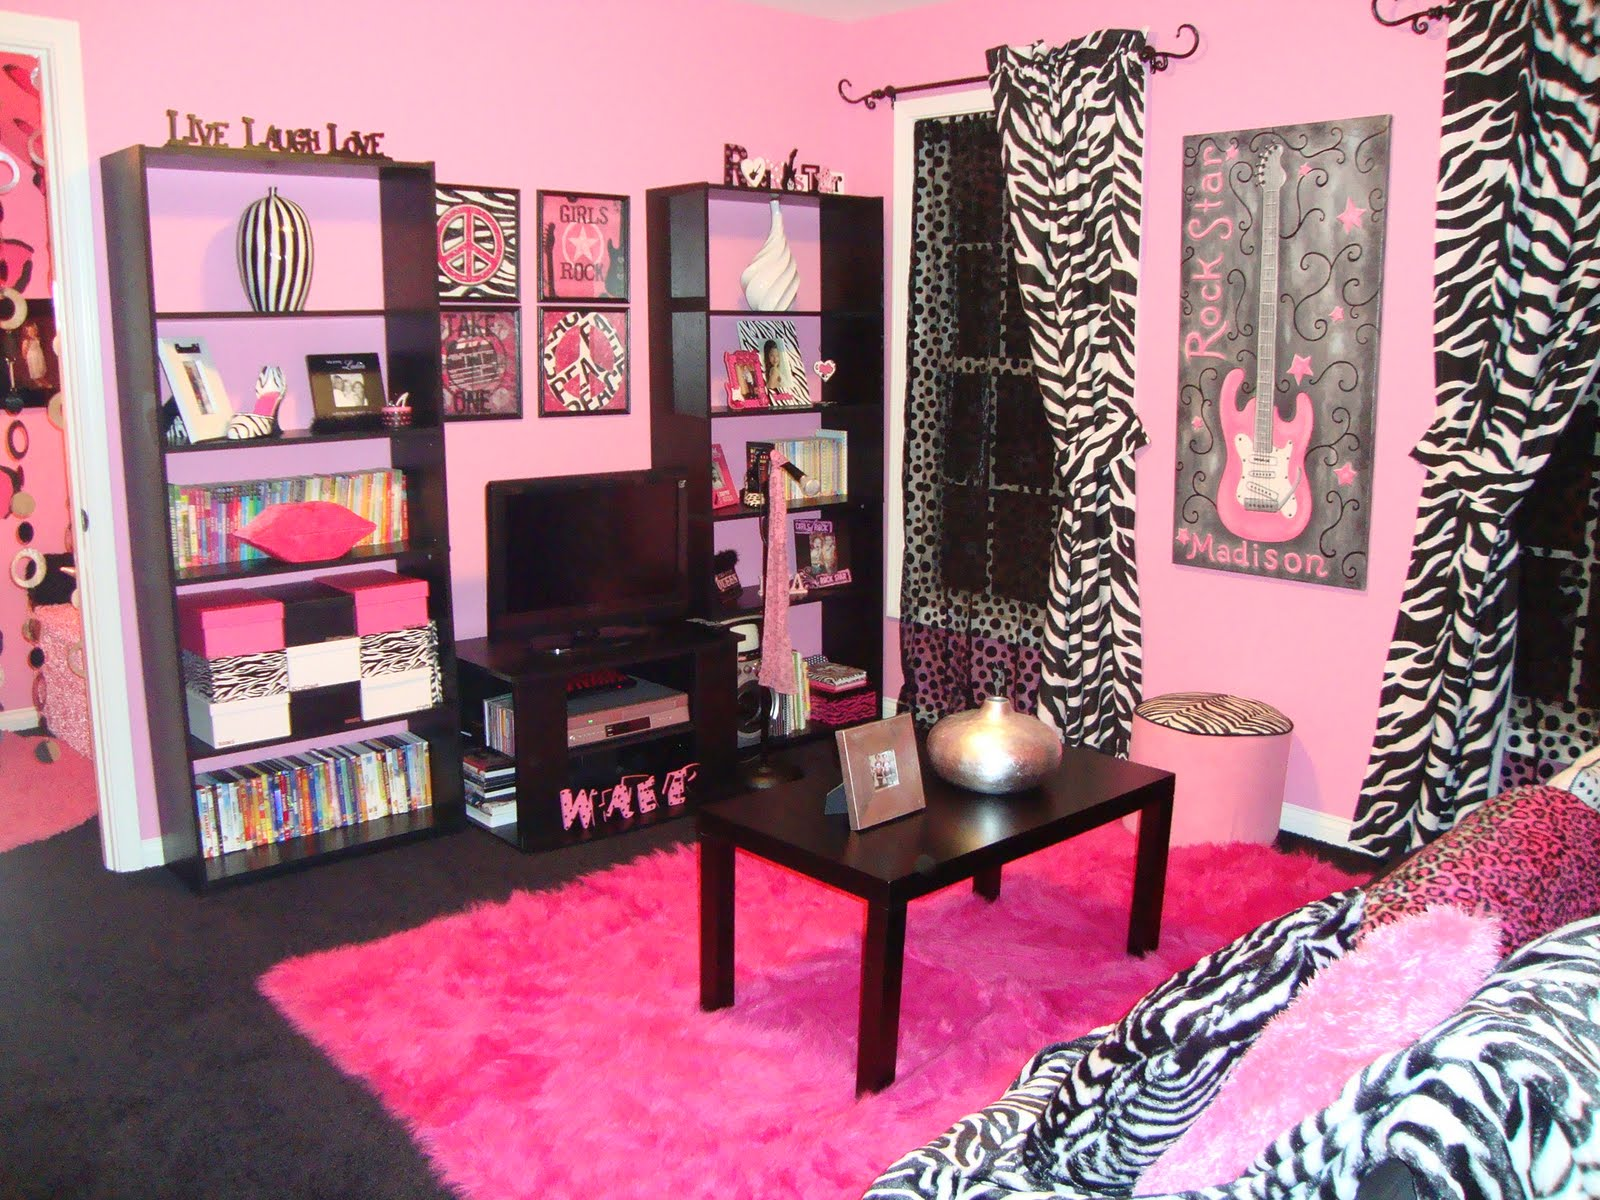 Pink And Black Zebra Shower Curtain 29 Free Wallpaper ...